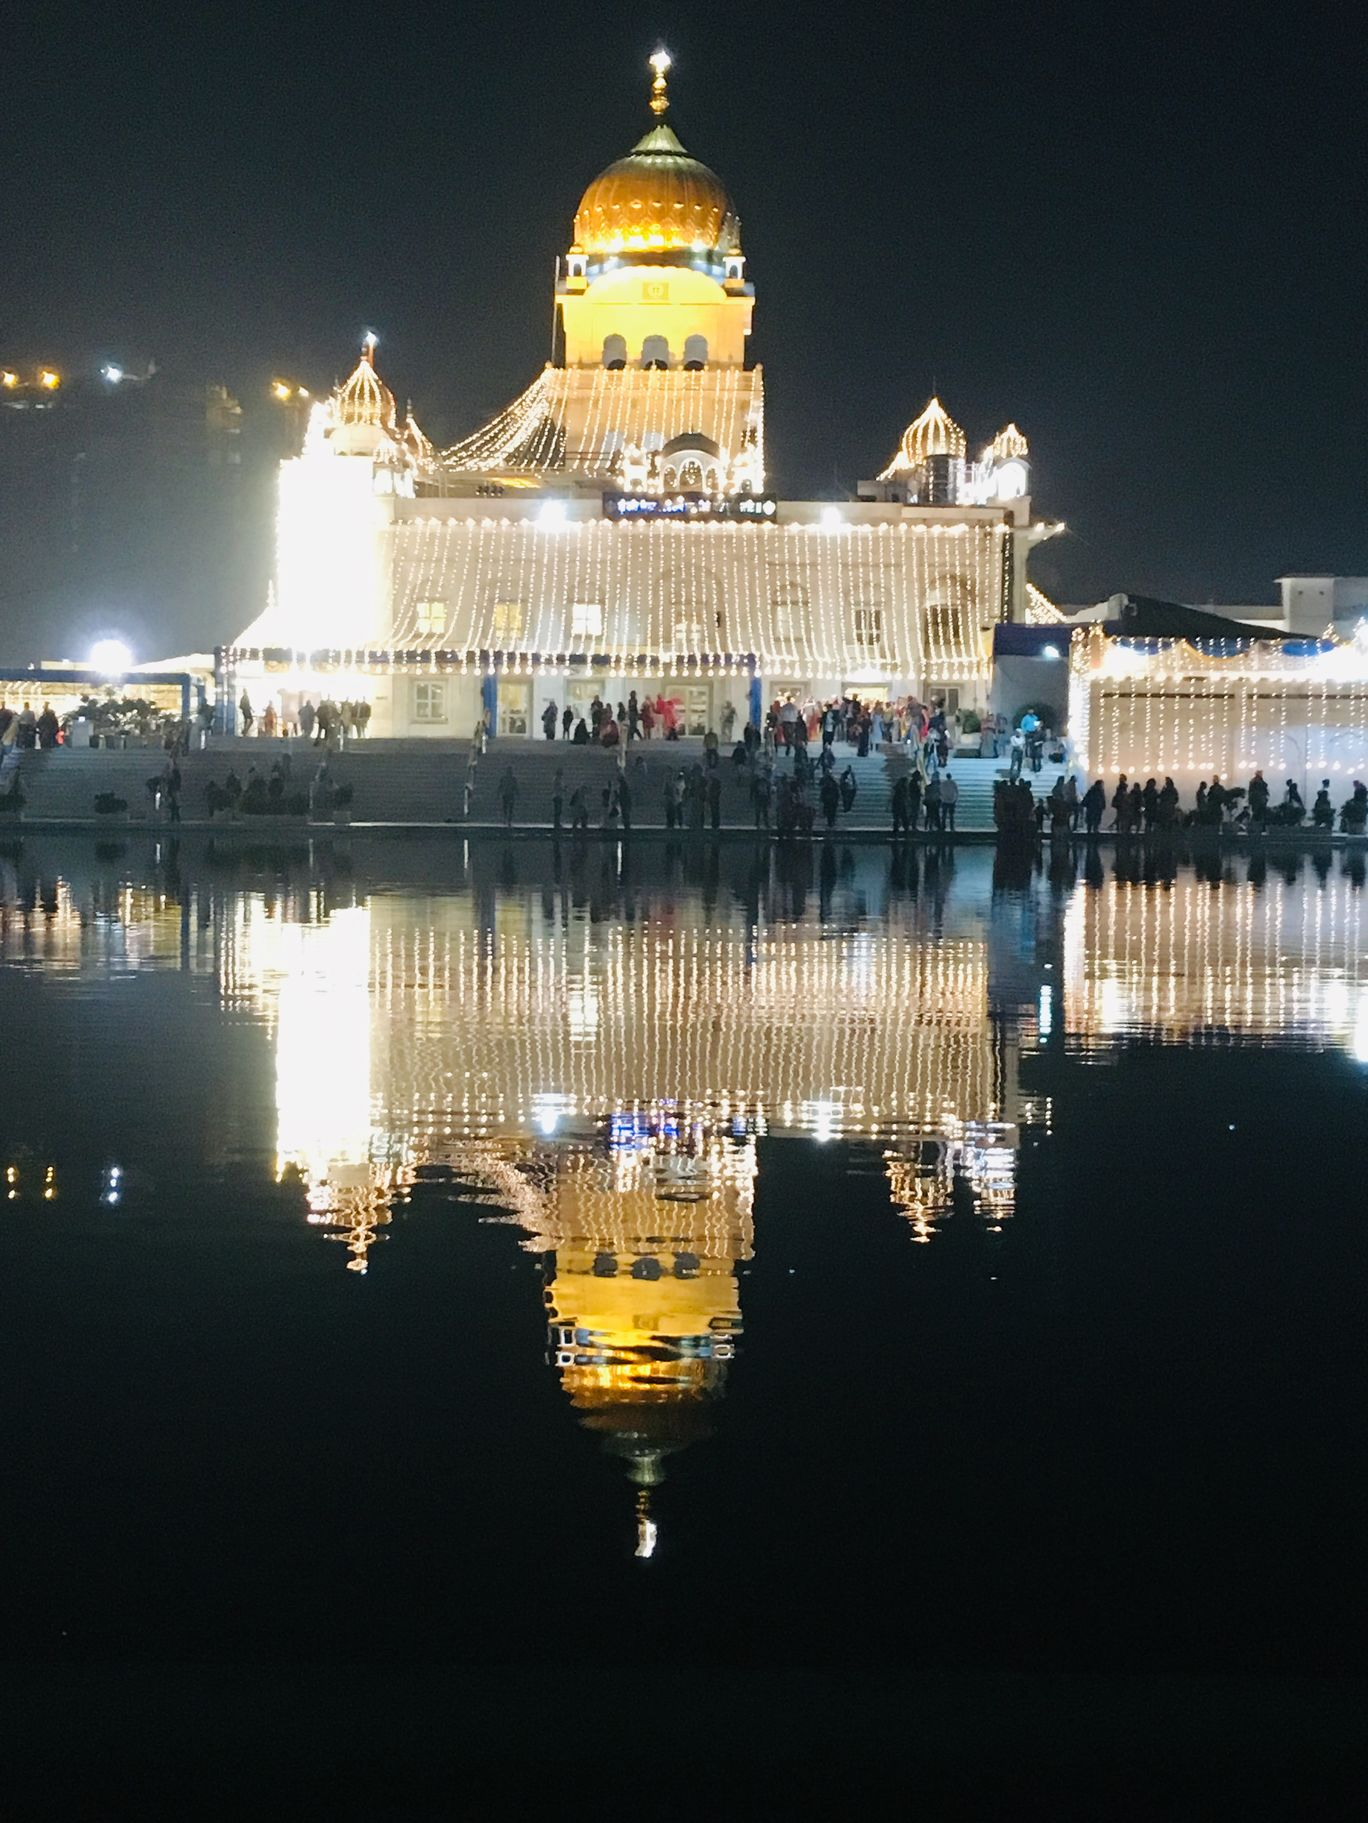 Photo of Sri Bangla Sahib Gurudwara By Aakarsh Rai